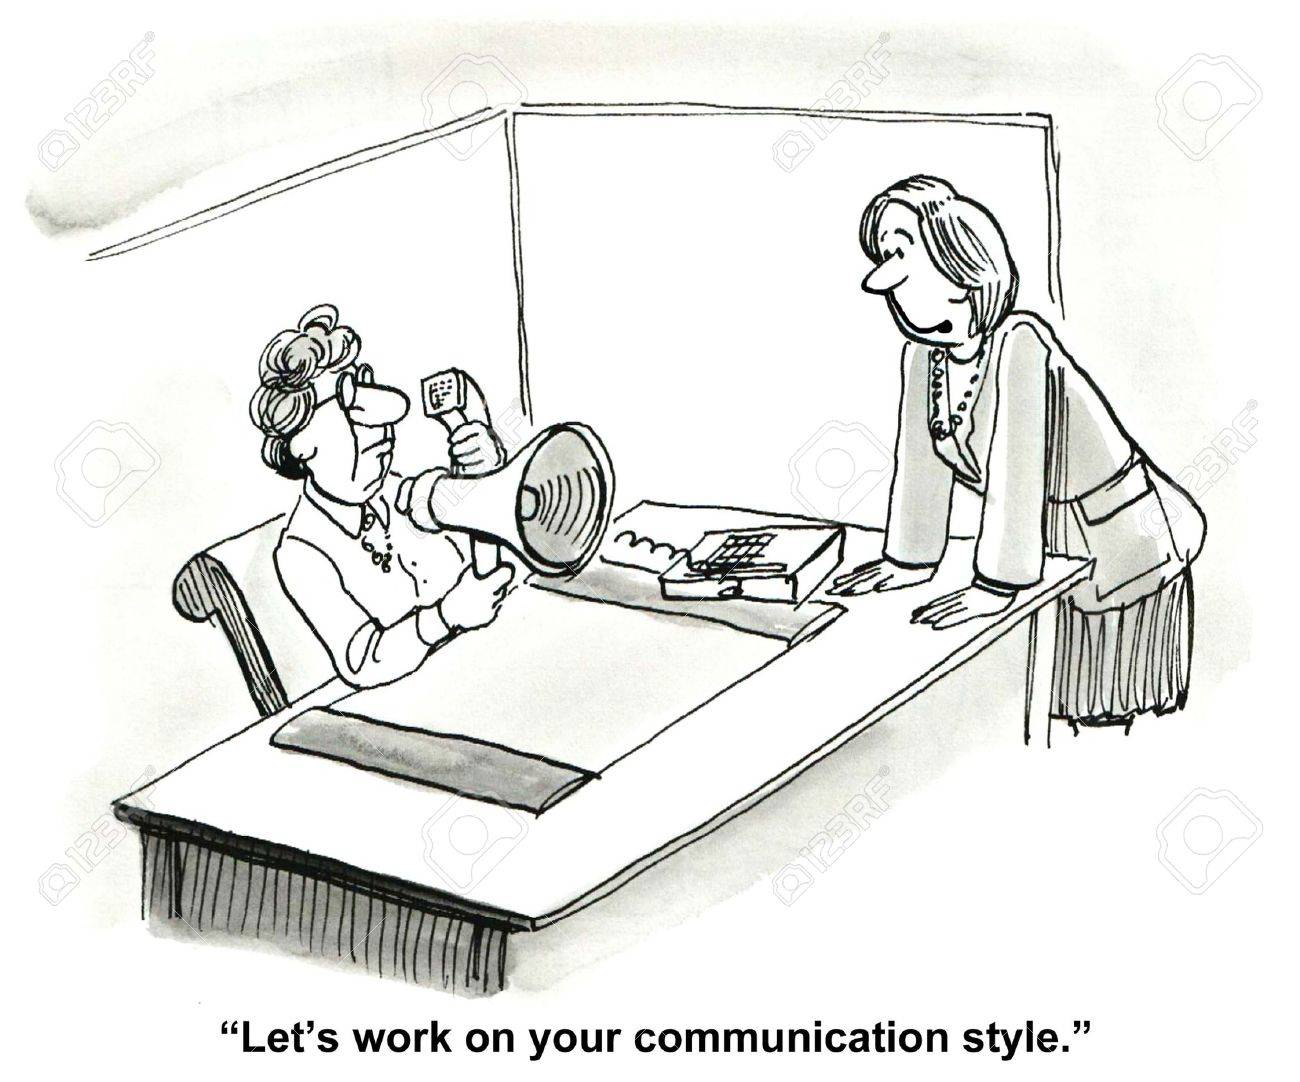 Cartoon of brash communicator, business coworker says, let us talk about your communication style. - 36809010